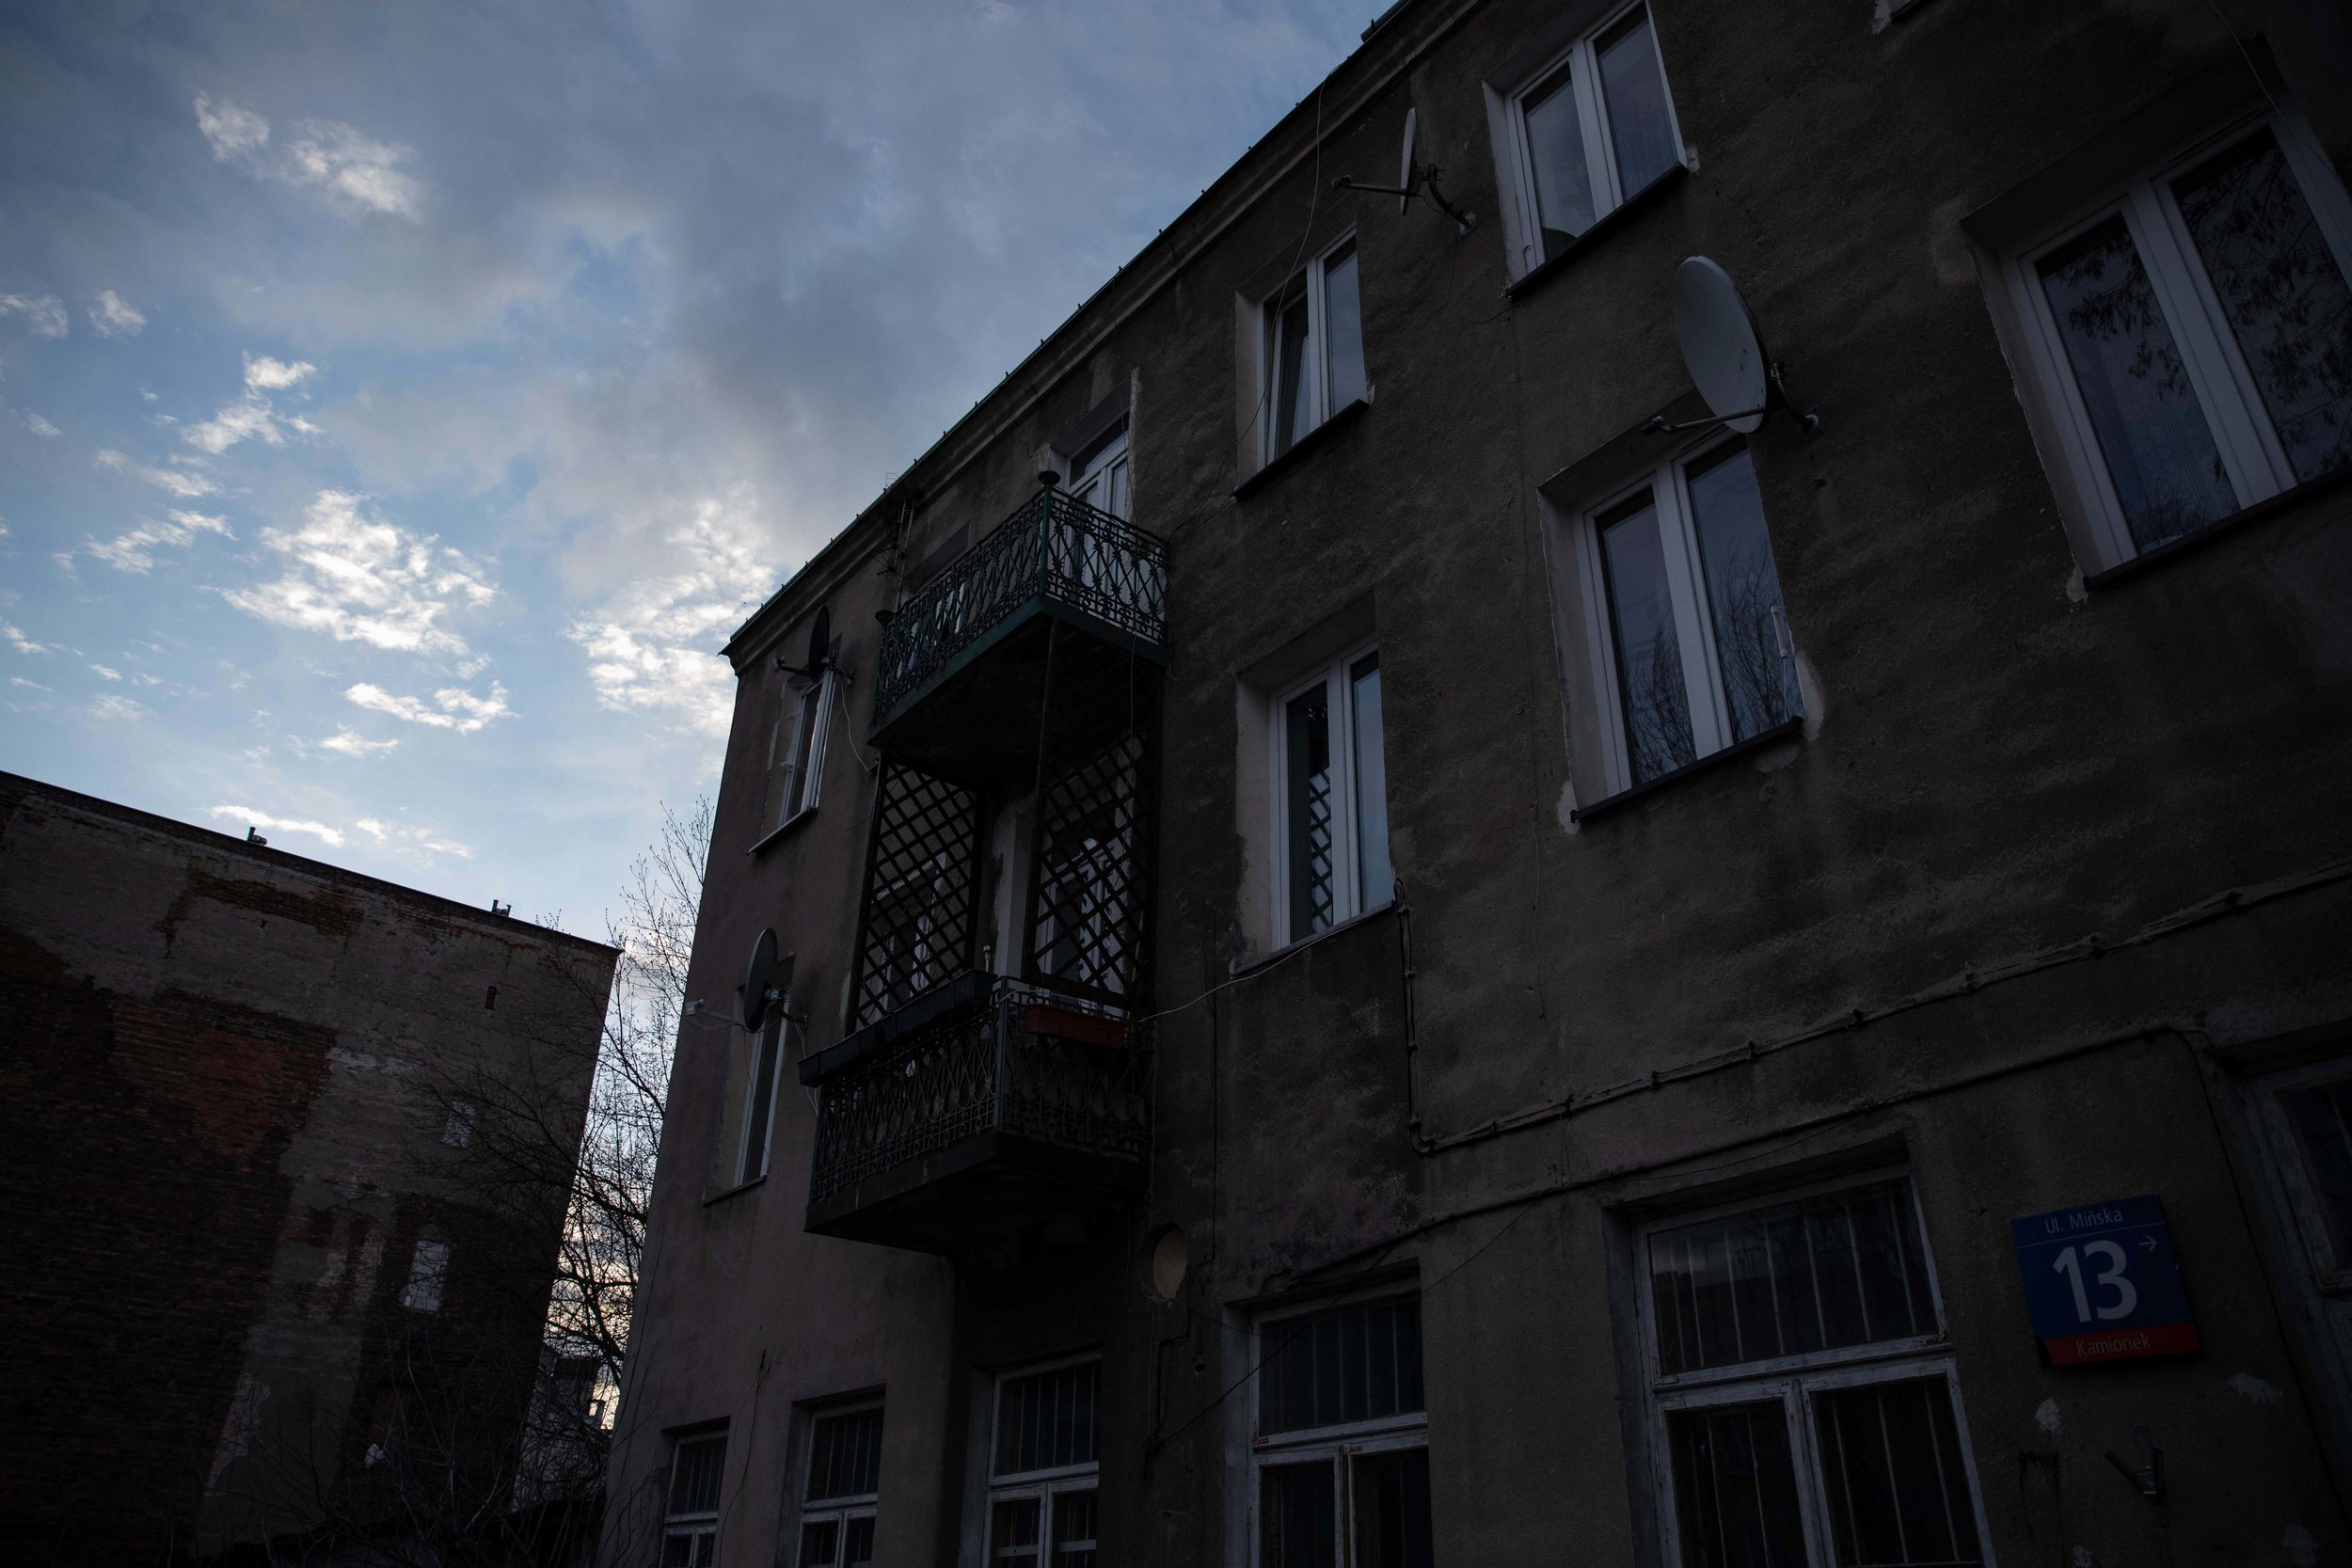 WARSAW • A city spokesman confirms that claims have been made against former owners of the building. With claims unresolved, it is not possible to launch major renovation.